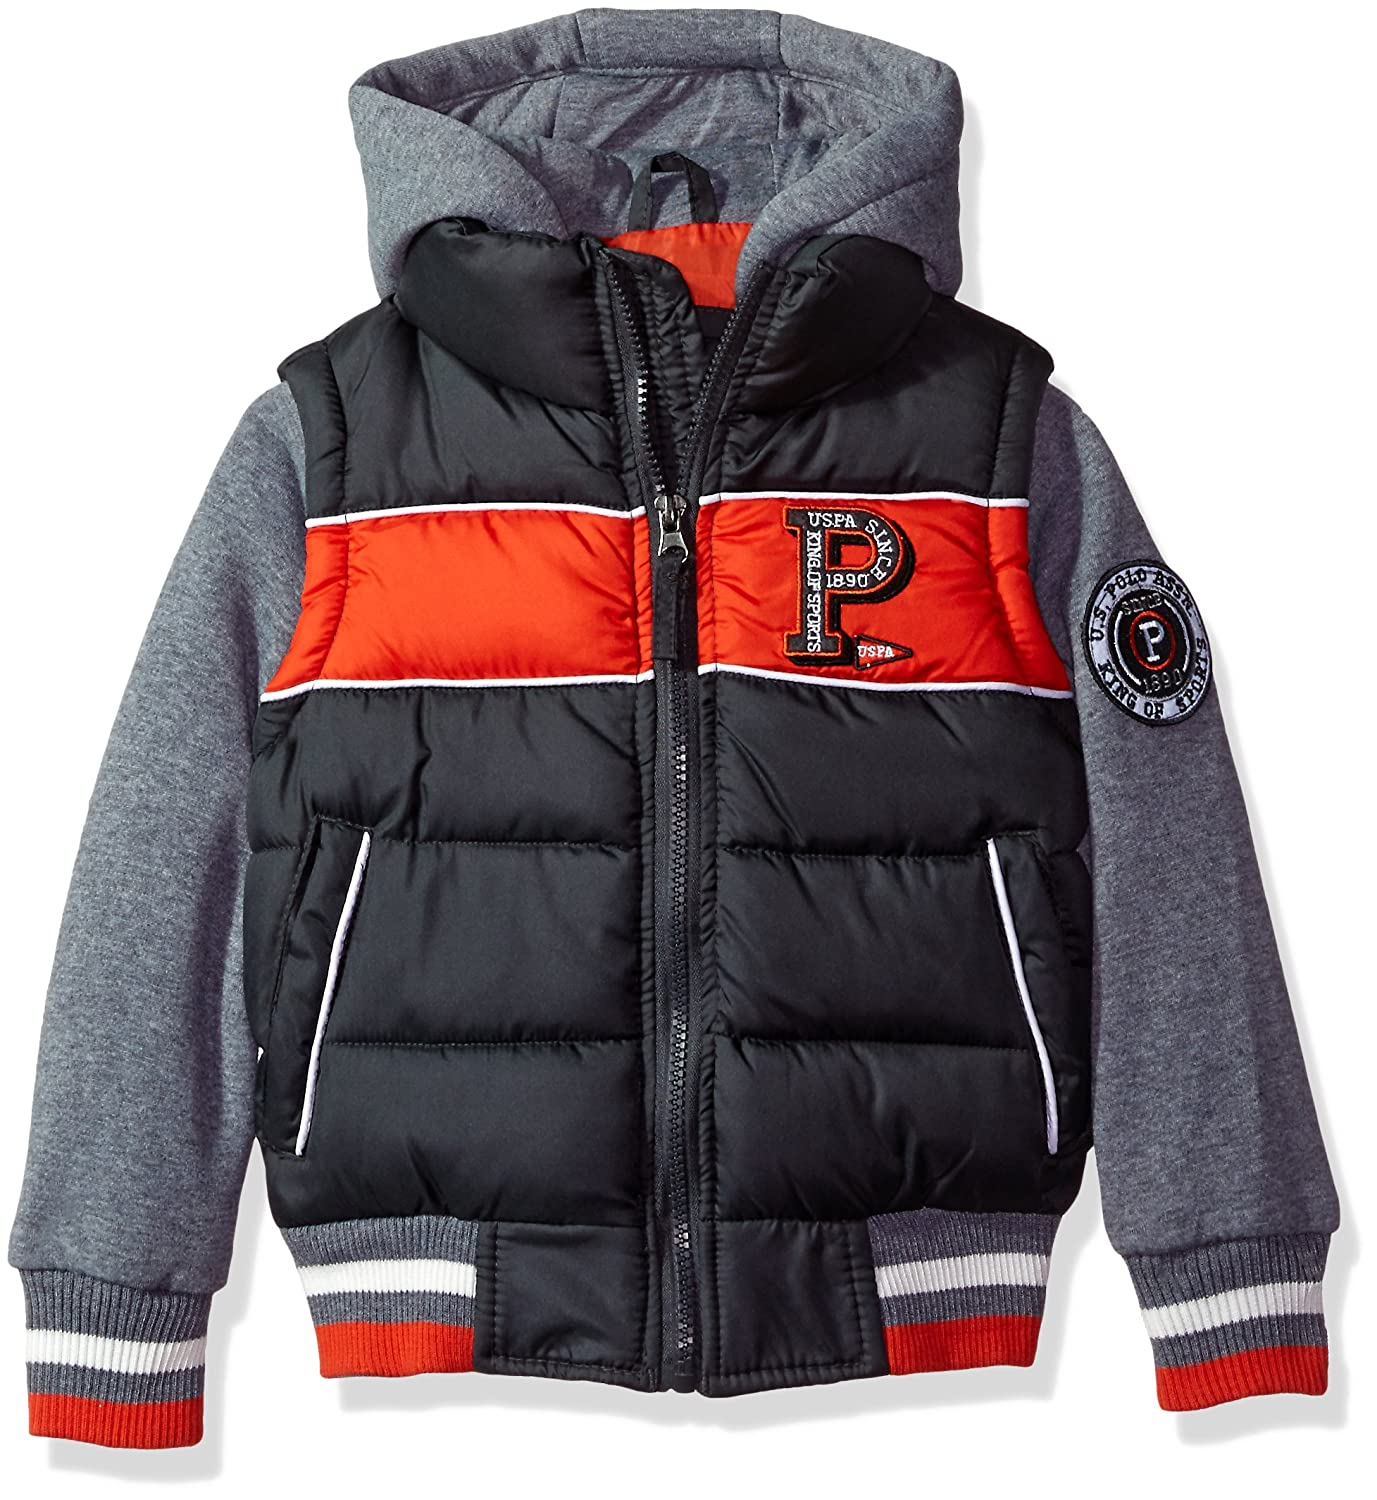 U.S. Polo Assn. Boys' Fashion Outerwear Jacket (More Styles Available) US Polo Baby Outerwear OIU315H